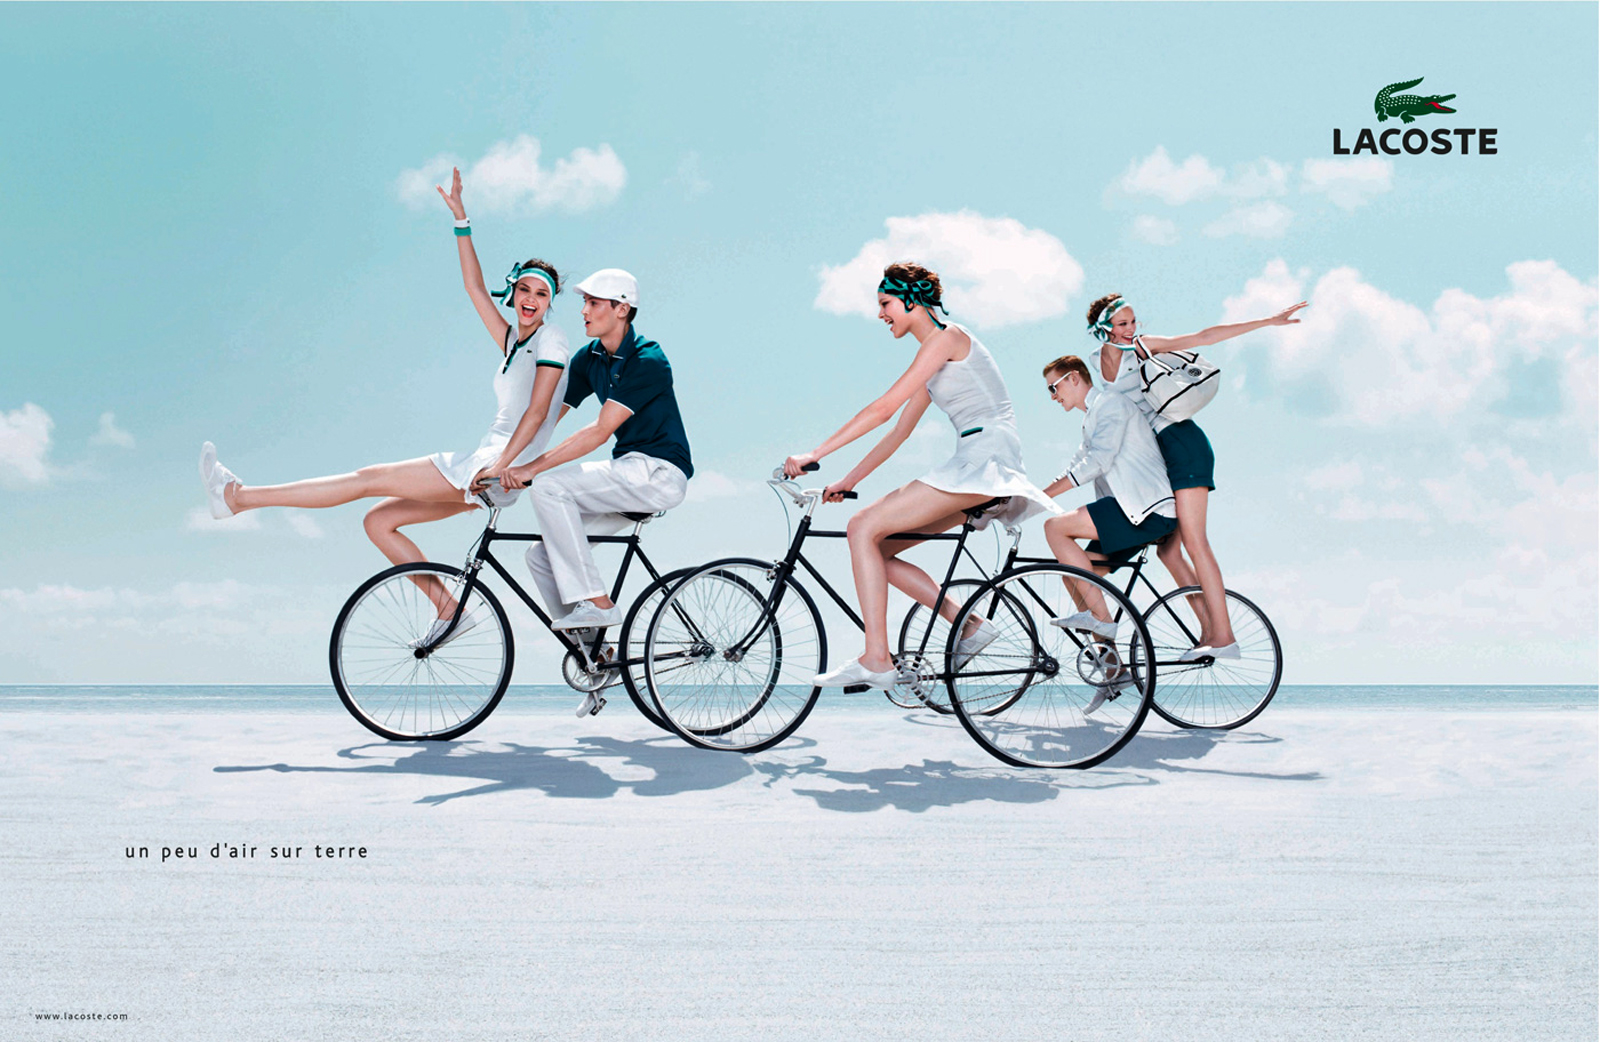 Central Wallpaper Cool Lacoste Ads Hd Fashion Wallpapers